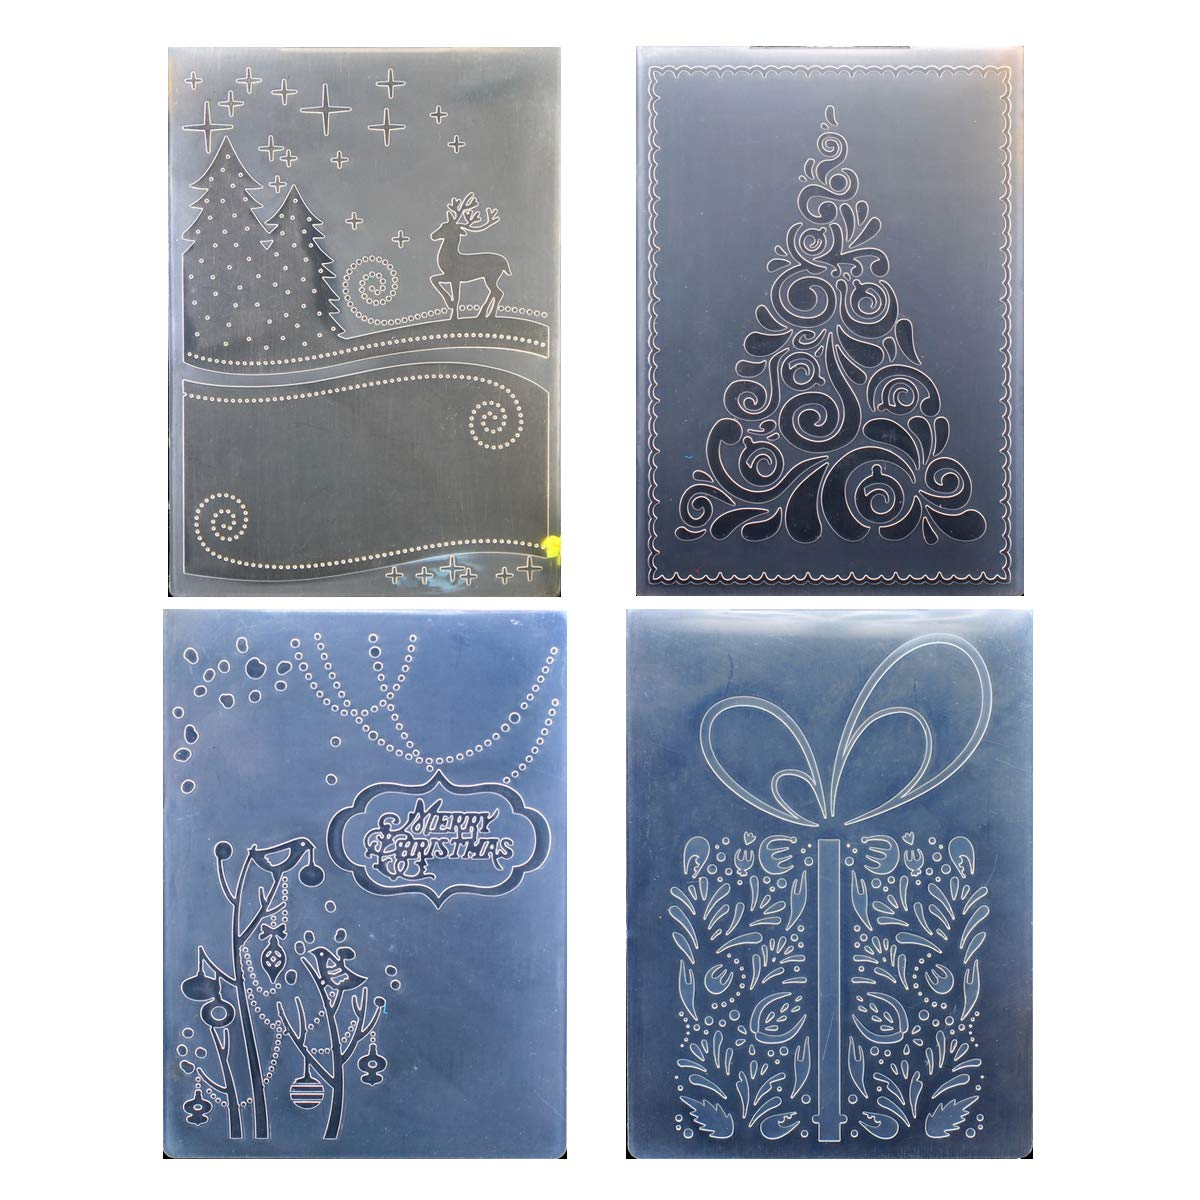 Kwan Crafts 4 pcs Different Style Christmas Deer Tree Giftbox Plastic Embossing Folders for Card Making Scrapbooking and Other Paper Crafts by Kwan Crafts